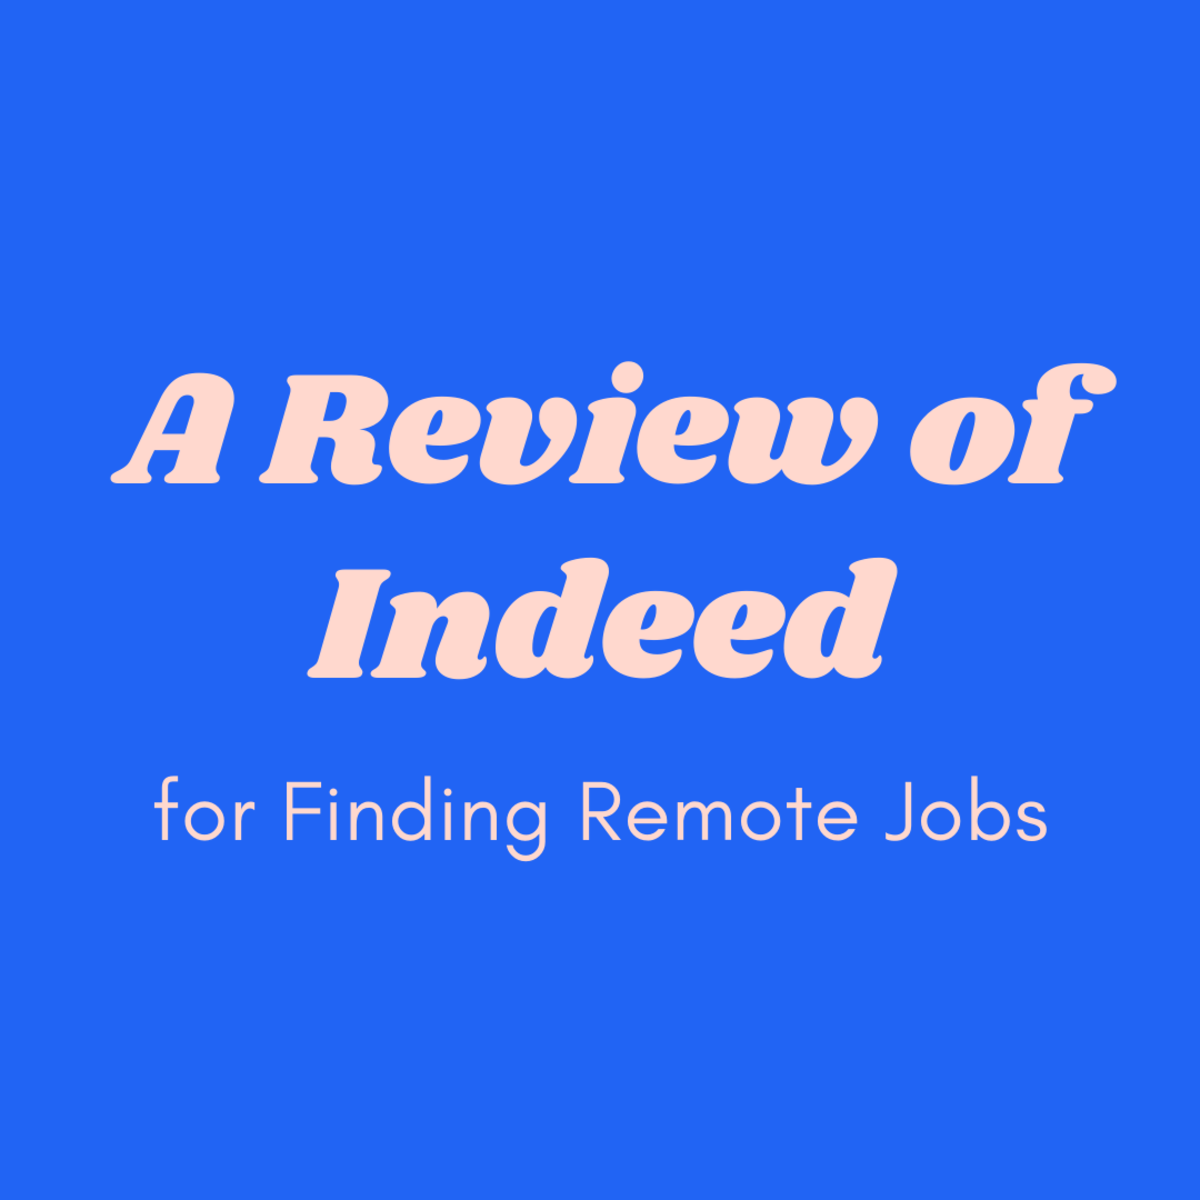 Is Indeed a good source for finding remote work? Read on to find out!